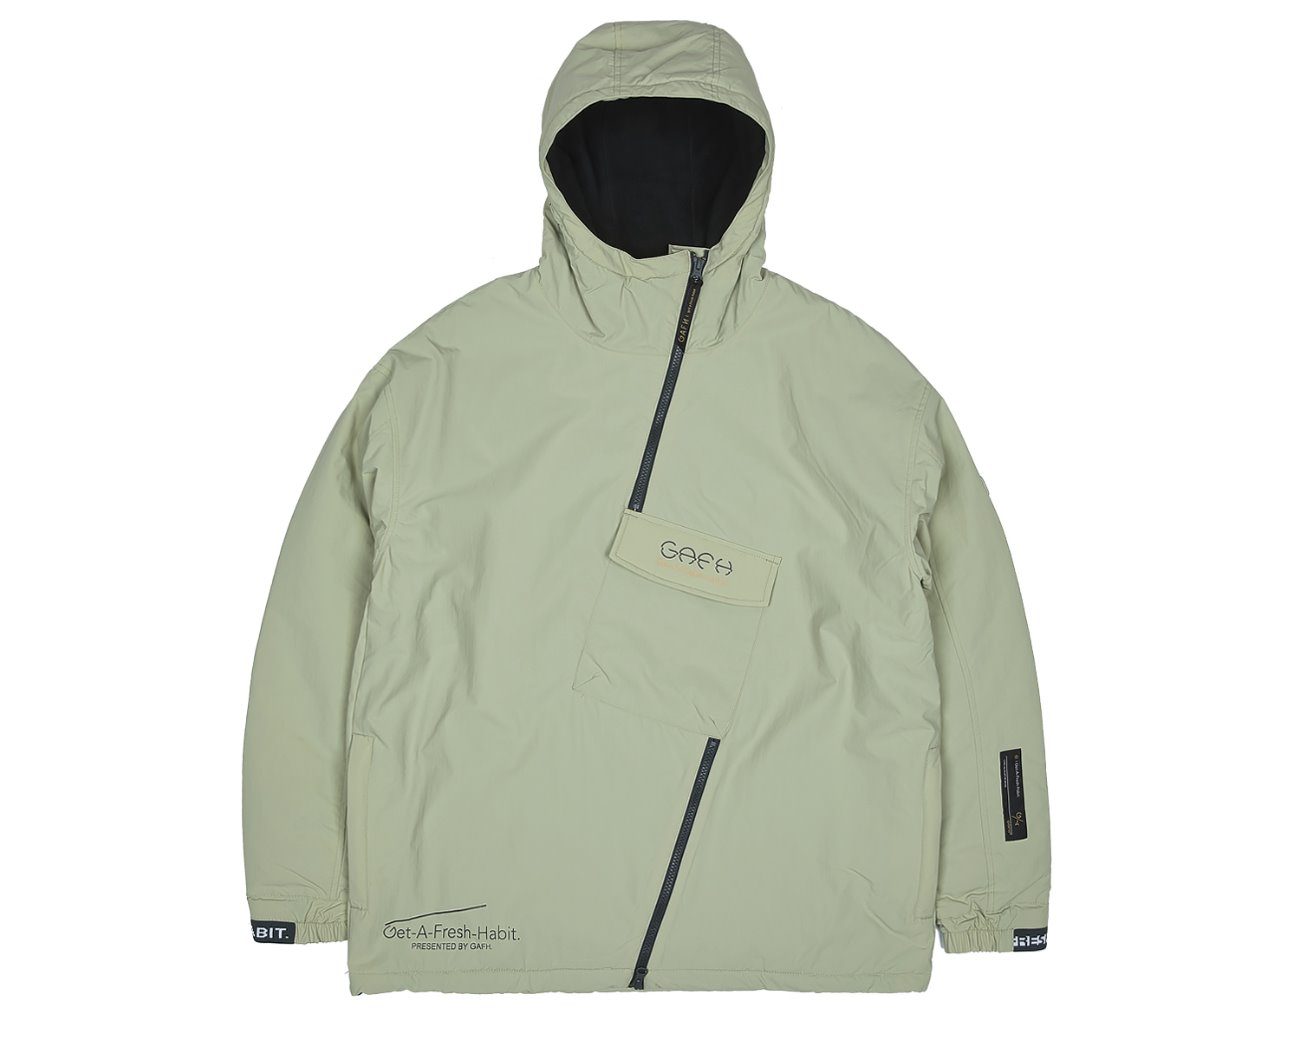 SIDE ZIP UP PULLOVER BOG / GAFH